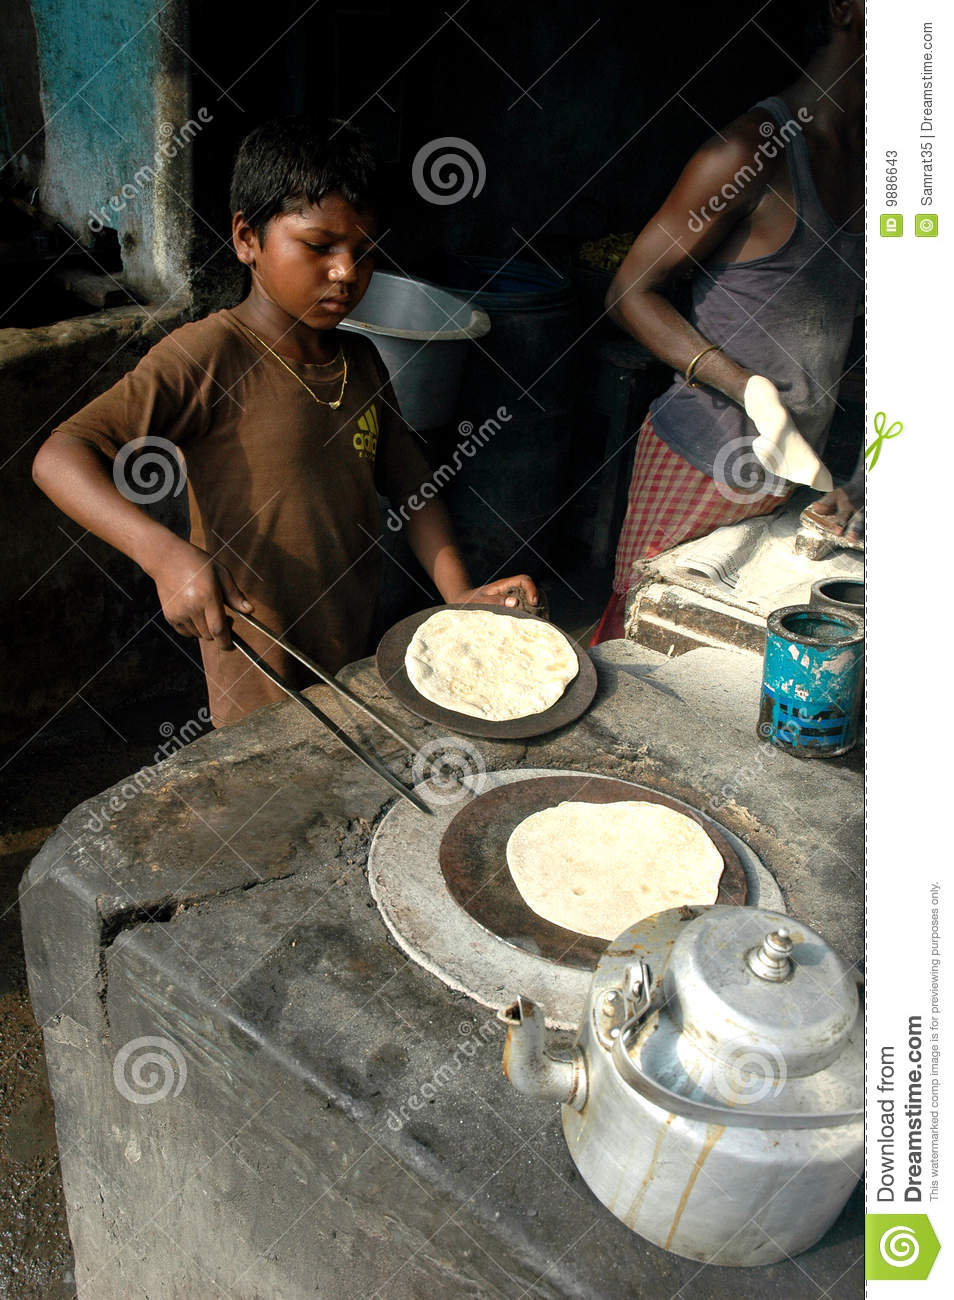 Child Labour In India Editorial Stock Photo Image 9886643